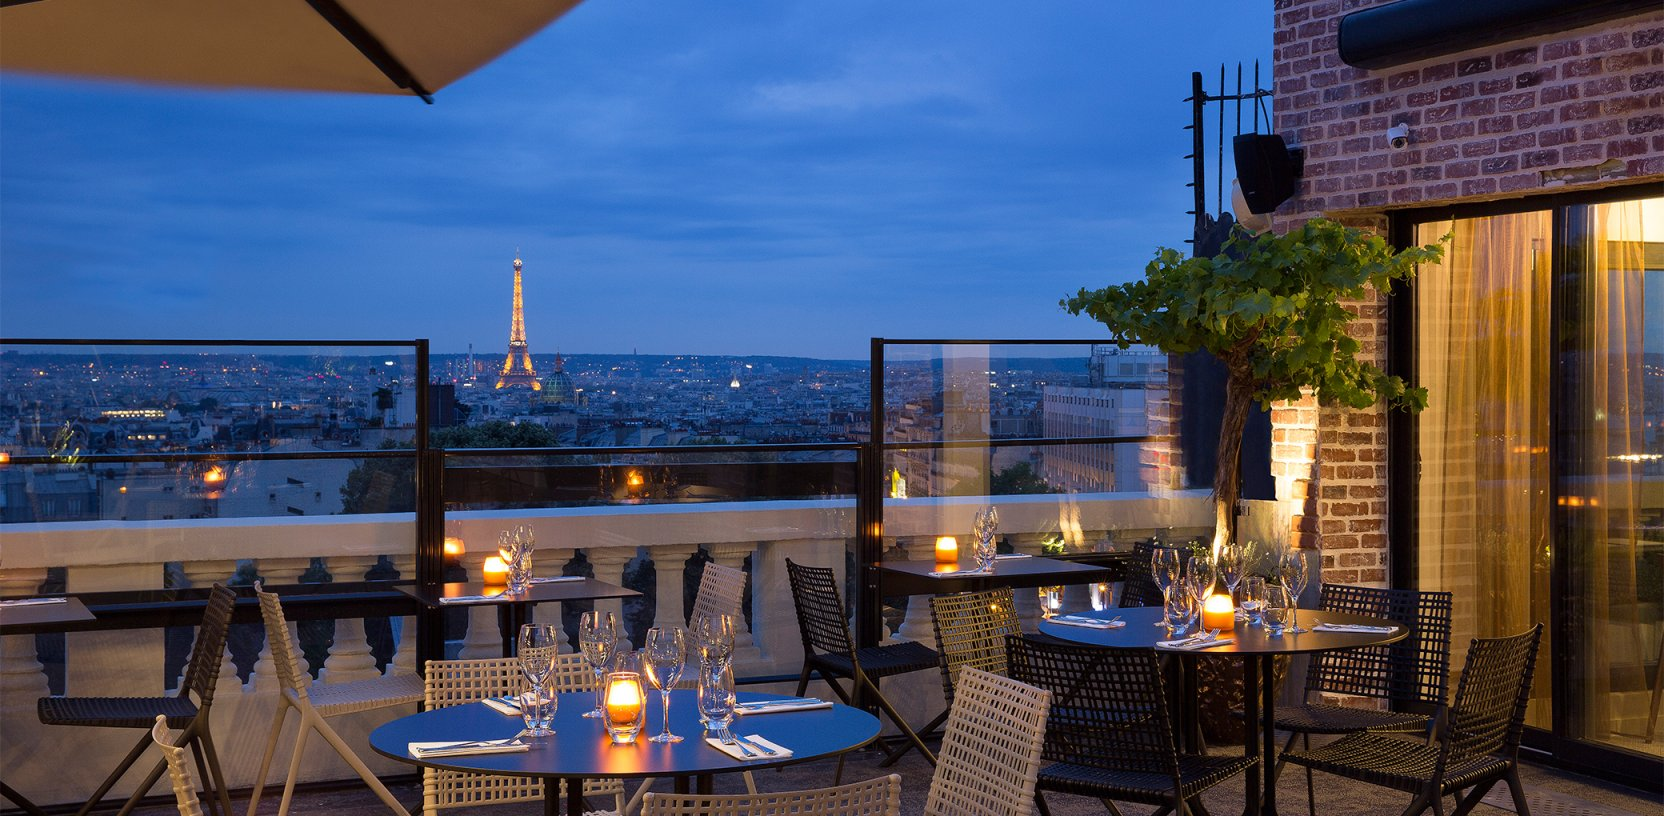 Restaurant Avec Terrasse à Paris Our 5 Favorite Rooftop Bars In Paris